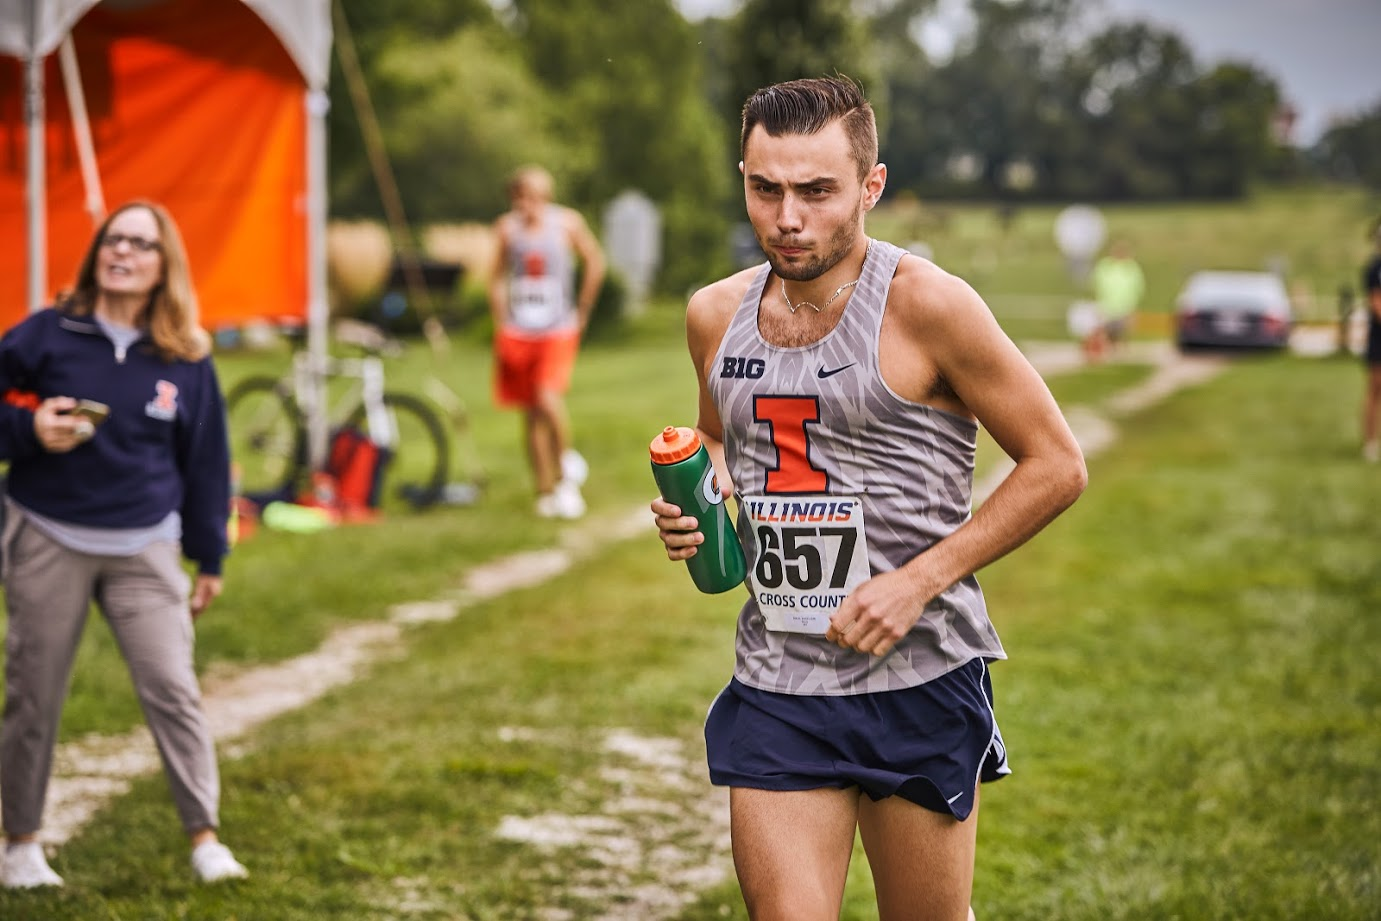 Zach Dale runs at the UI arboretum for the Illini Open on Aug. 30.